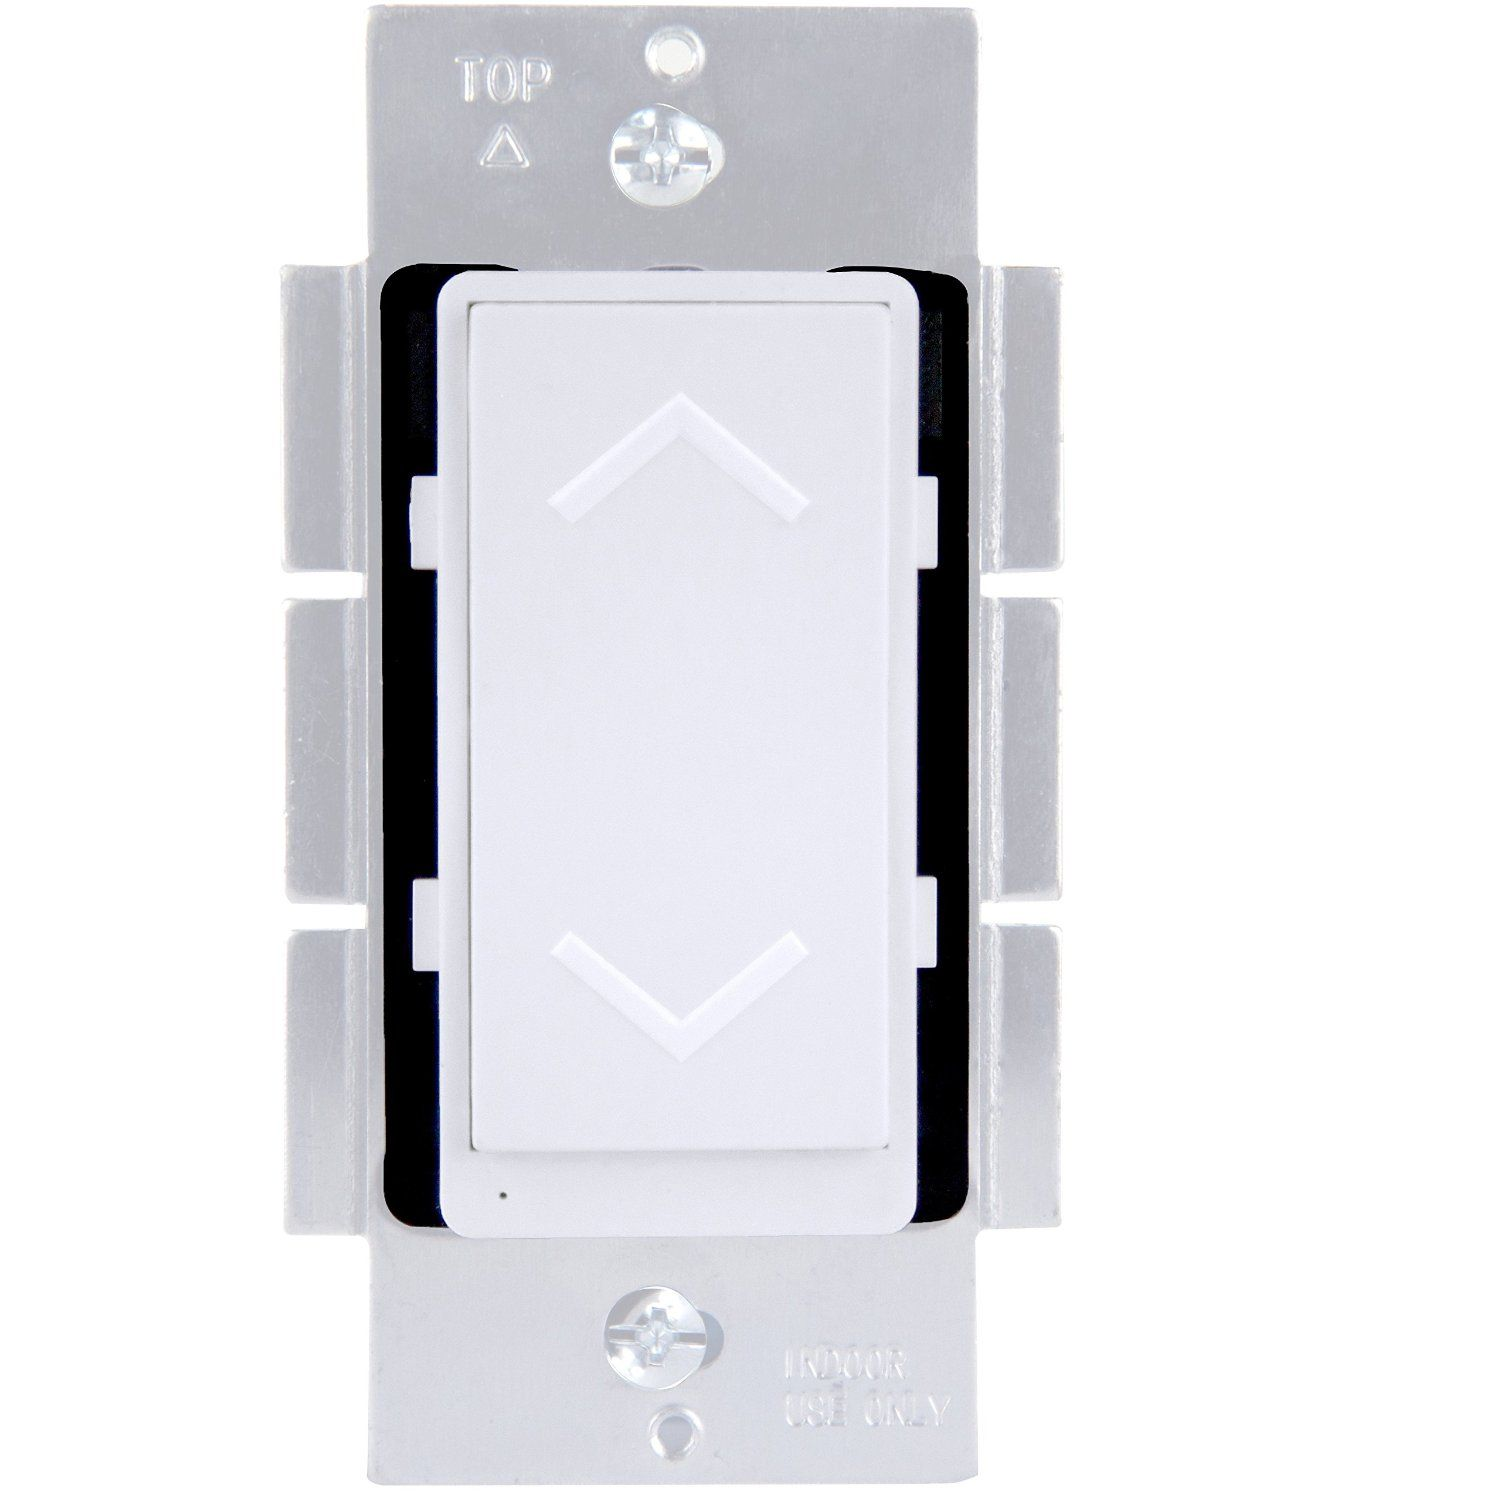 Enerwave ZW500D-W Z-Wave Wireless Light Dimmer Switch ...